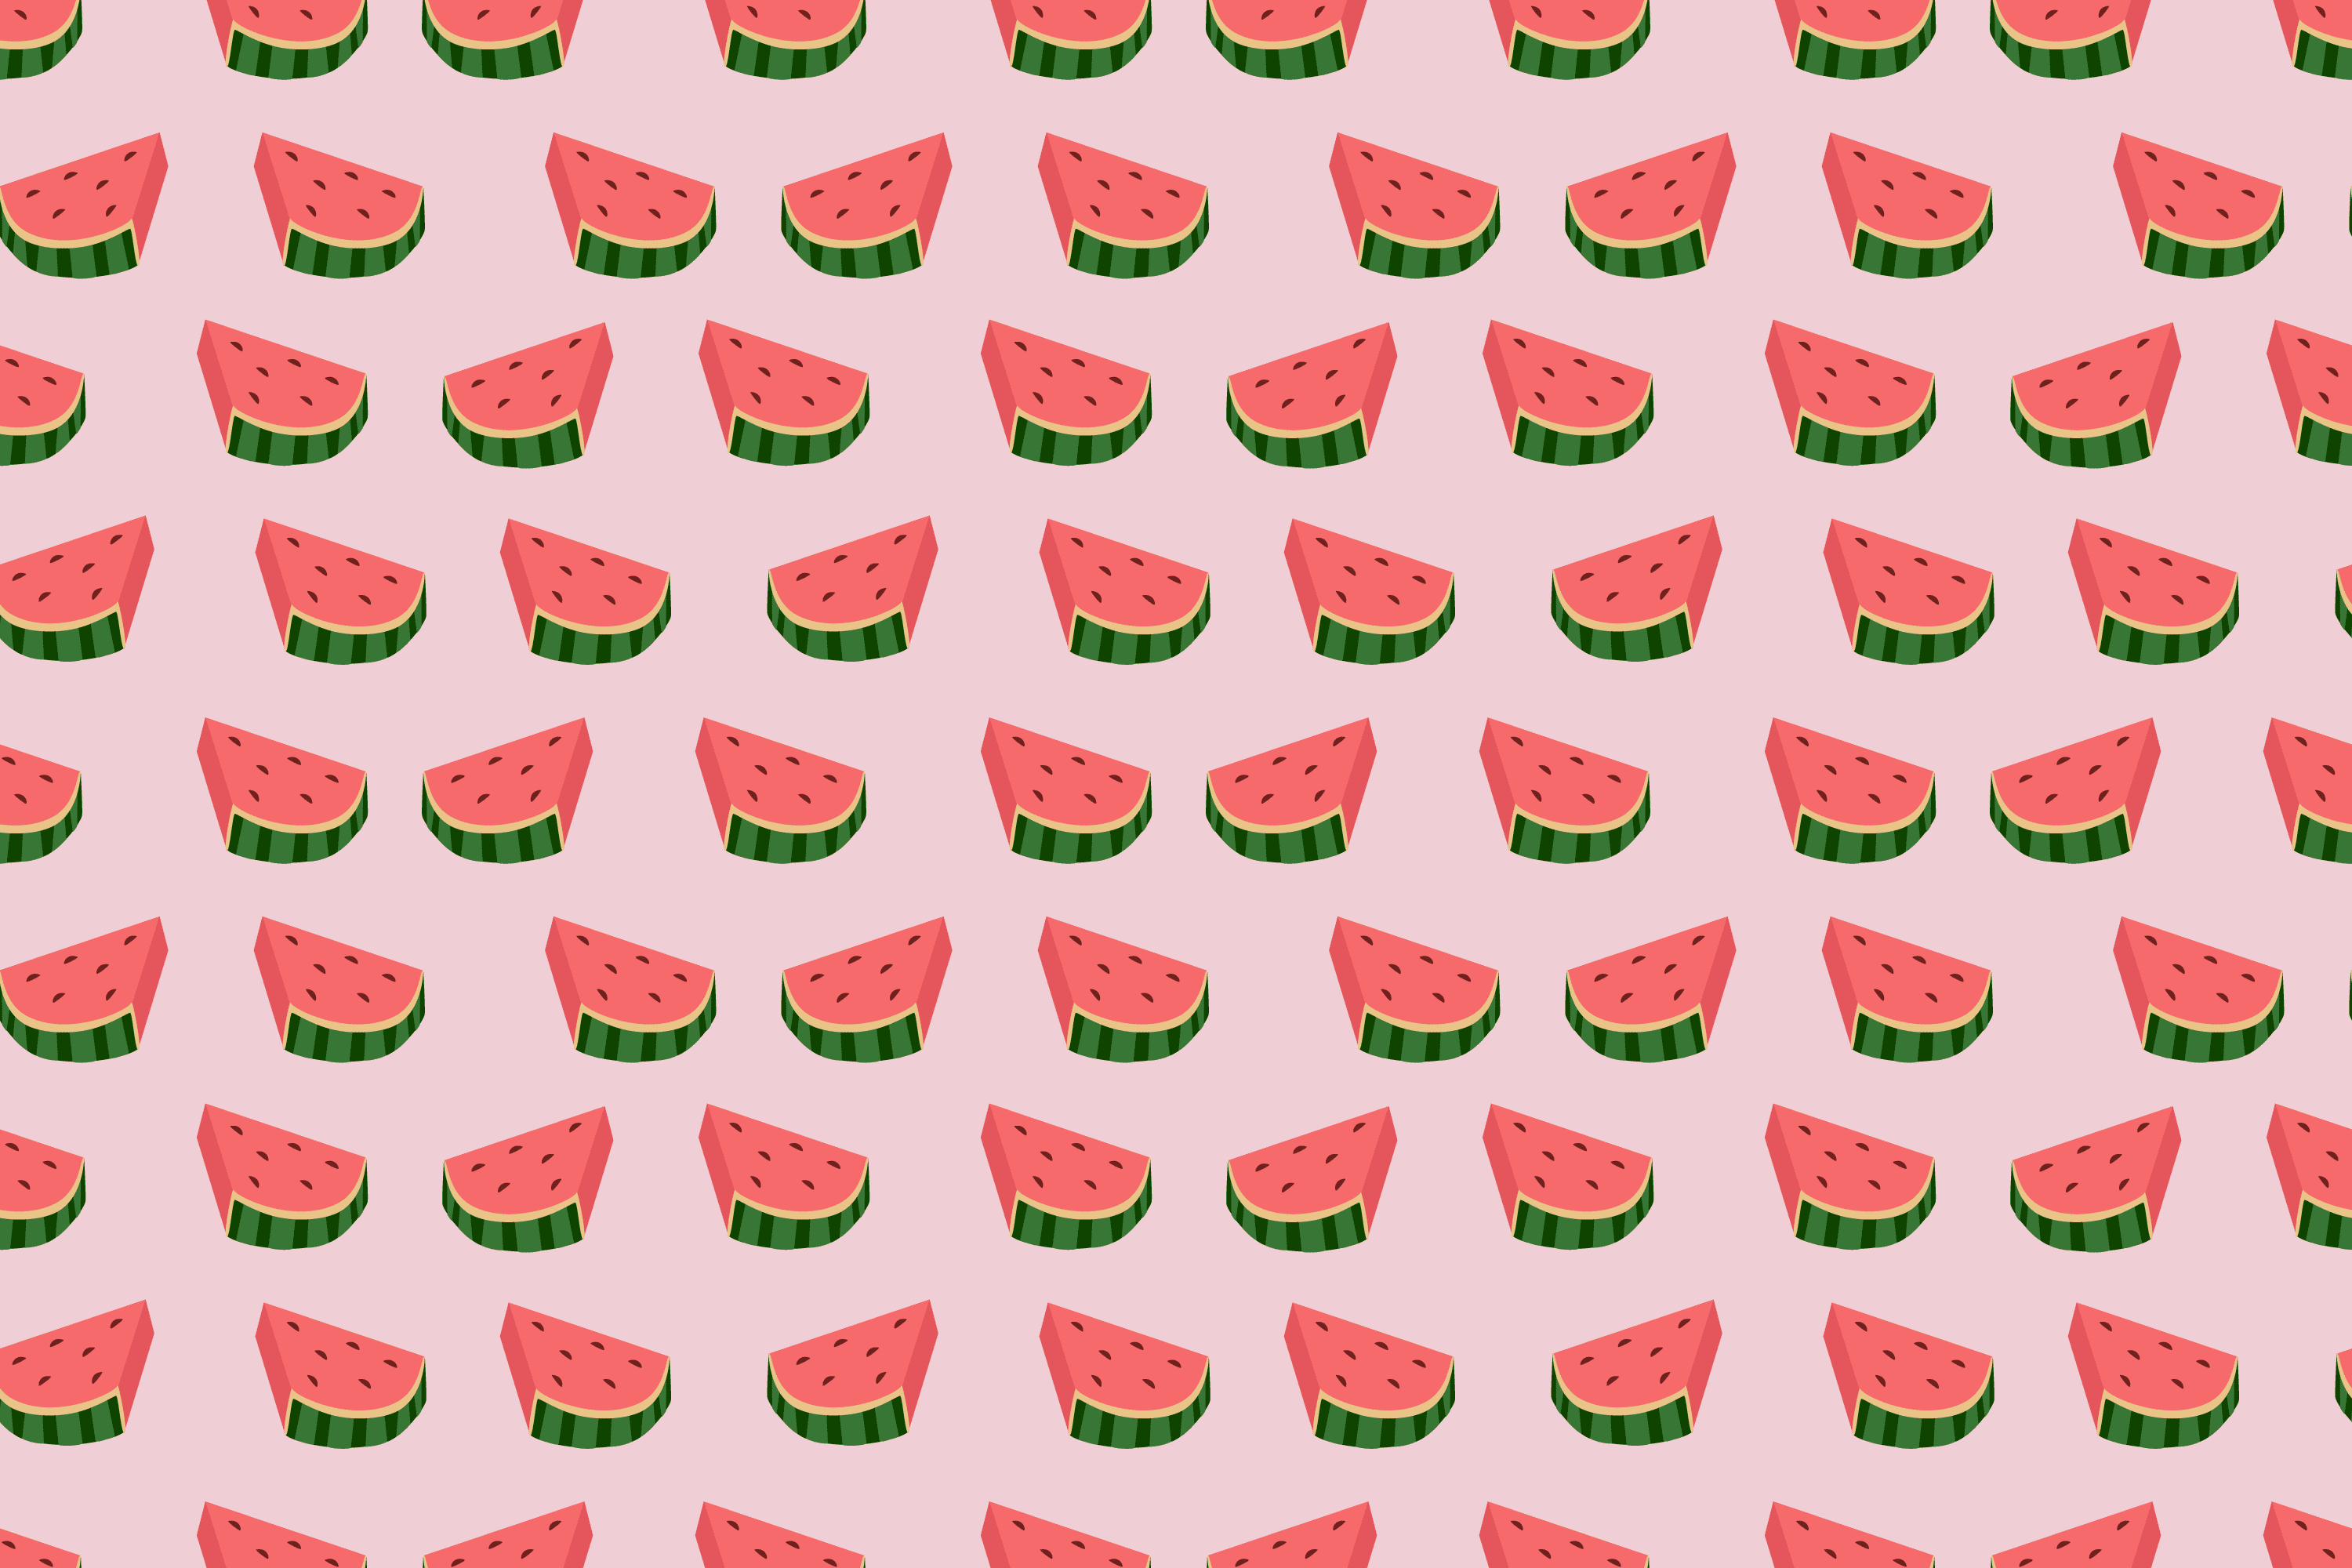 Water melon slices seamless pattern light background